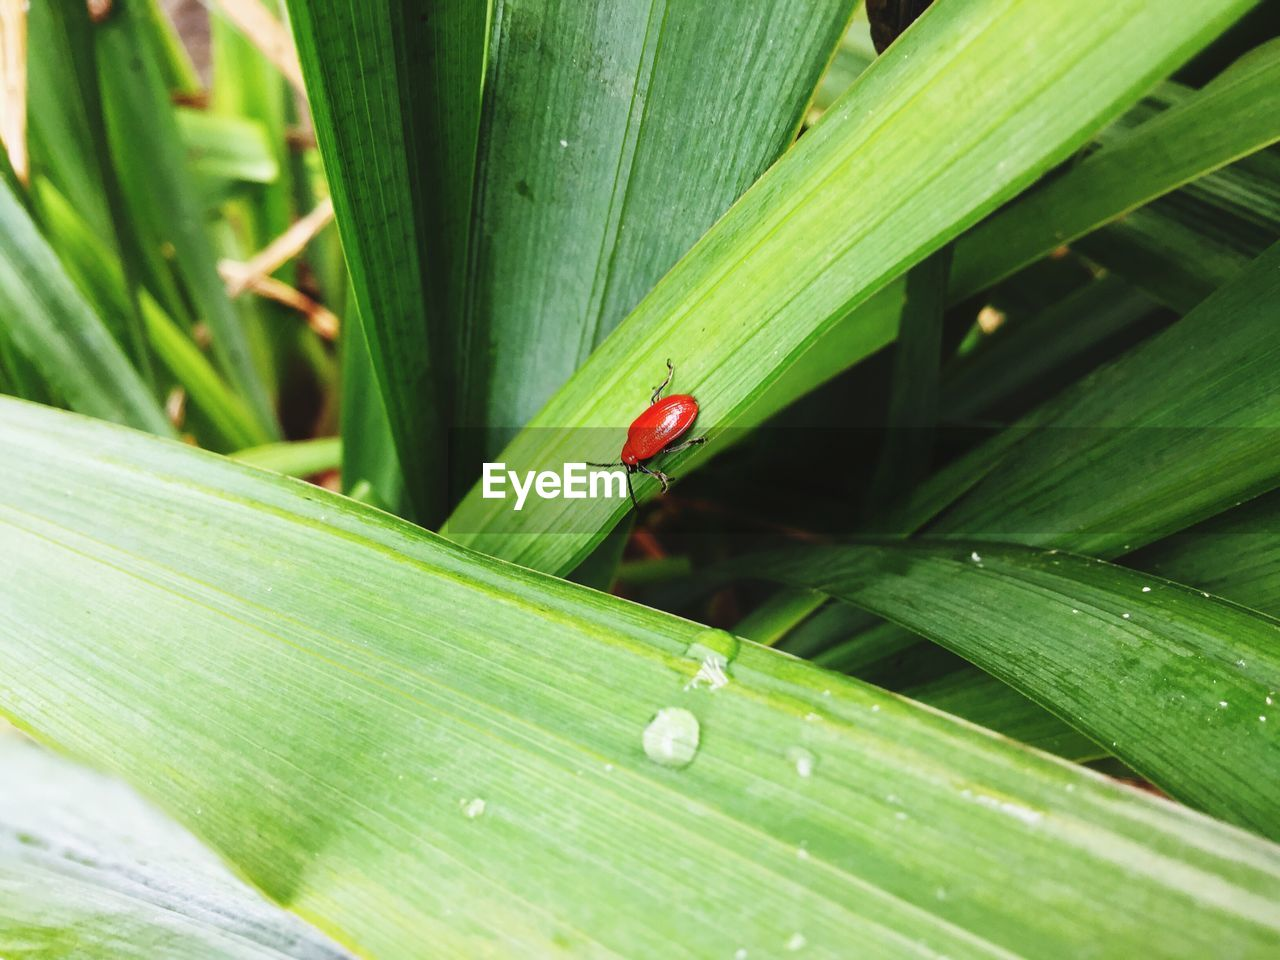 leaf, one animal, insect, green color, animals in the wild, animal themes, nature, plant, growth, day, outdoors, ladybug, red, animal wildlife, no people, close-up, tiny, beauty in nature, fragility